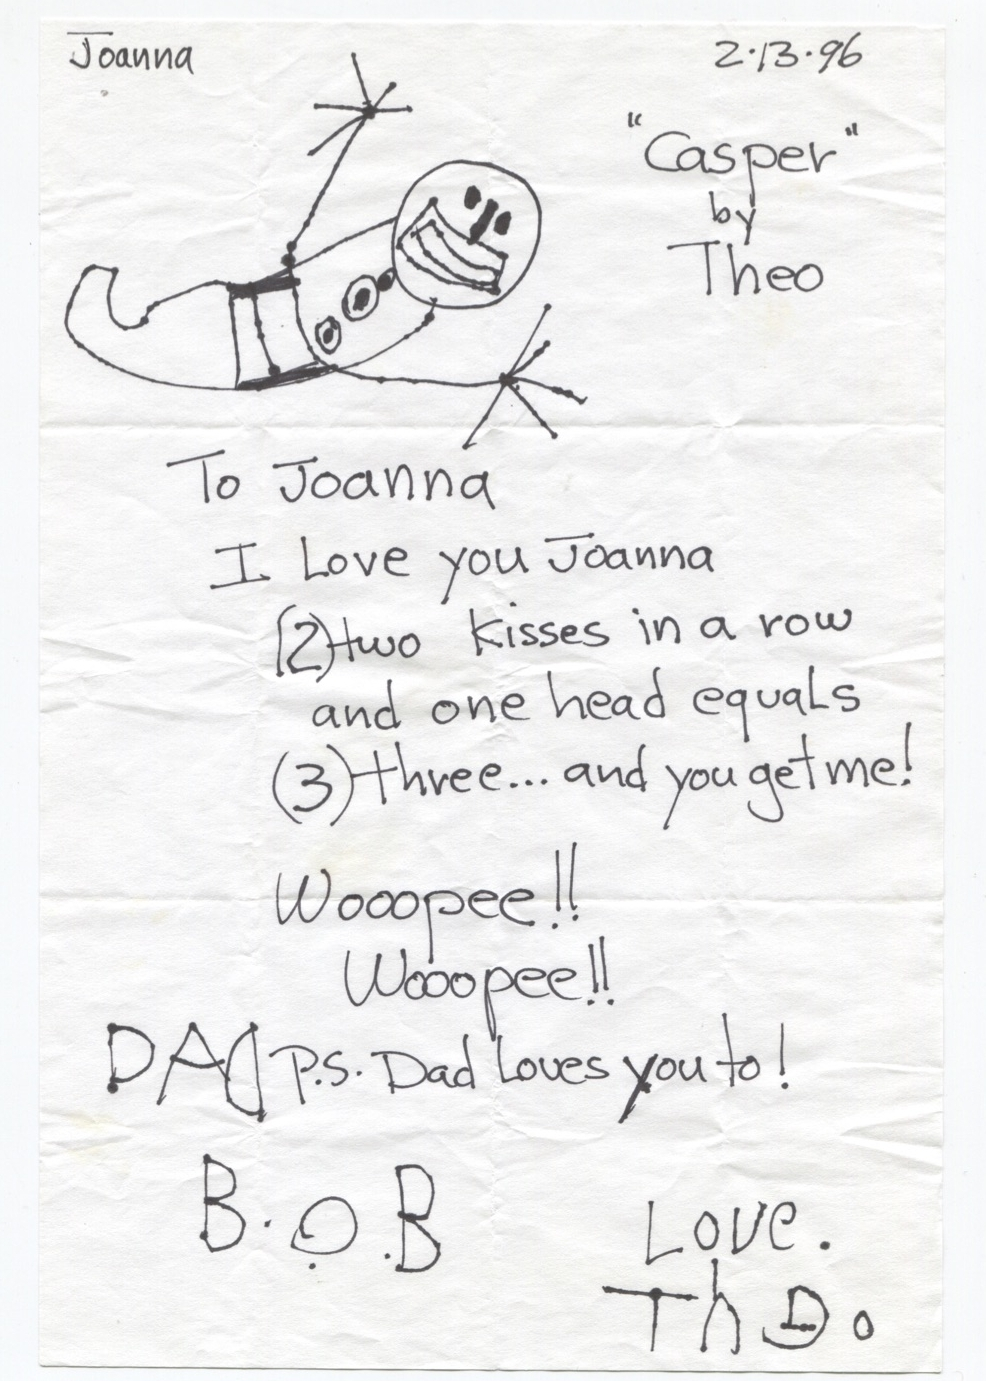 """""""Casper"""" by Theo.  To Joanna: I love you Joanna (2) kisses in a row and one head equals (3) three... and you get me! Woopee!! Wooppee!!  P.S. Dad loves you too!"""